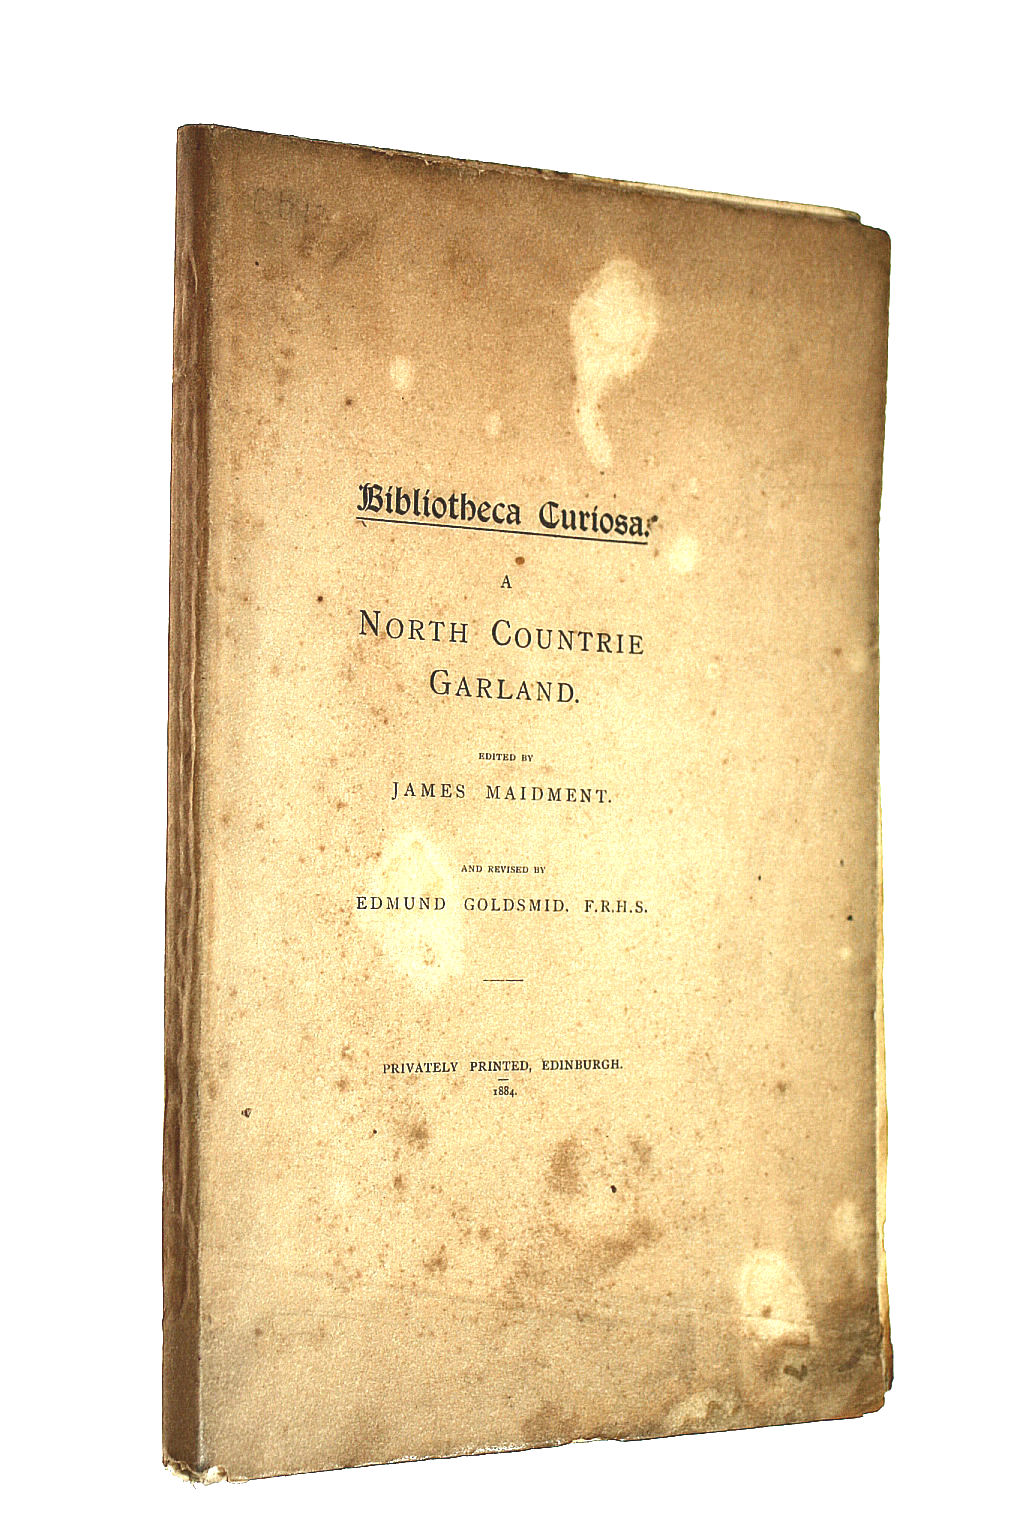 Image for Bibliotheca curiosa: A north countrie garland